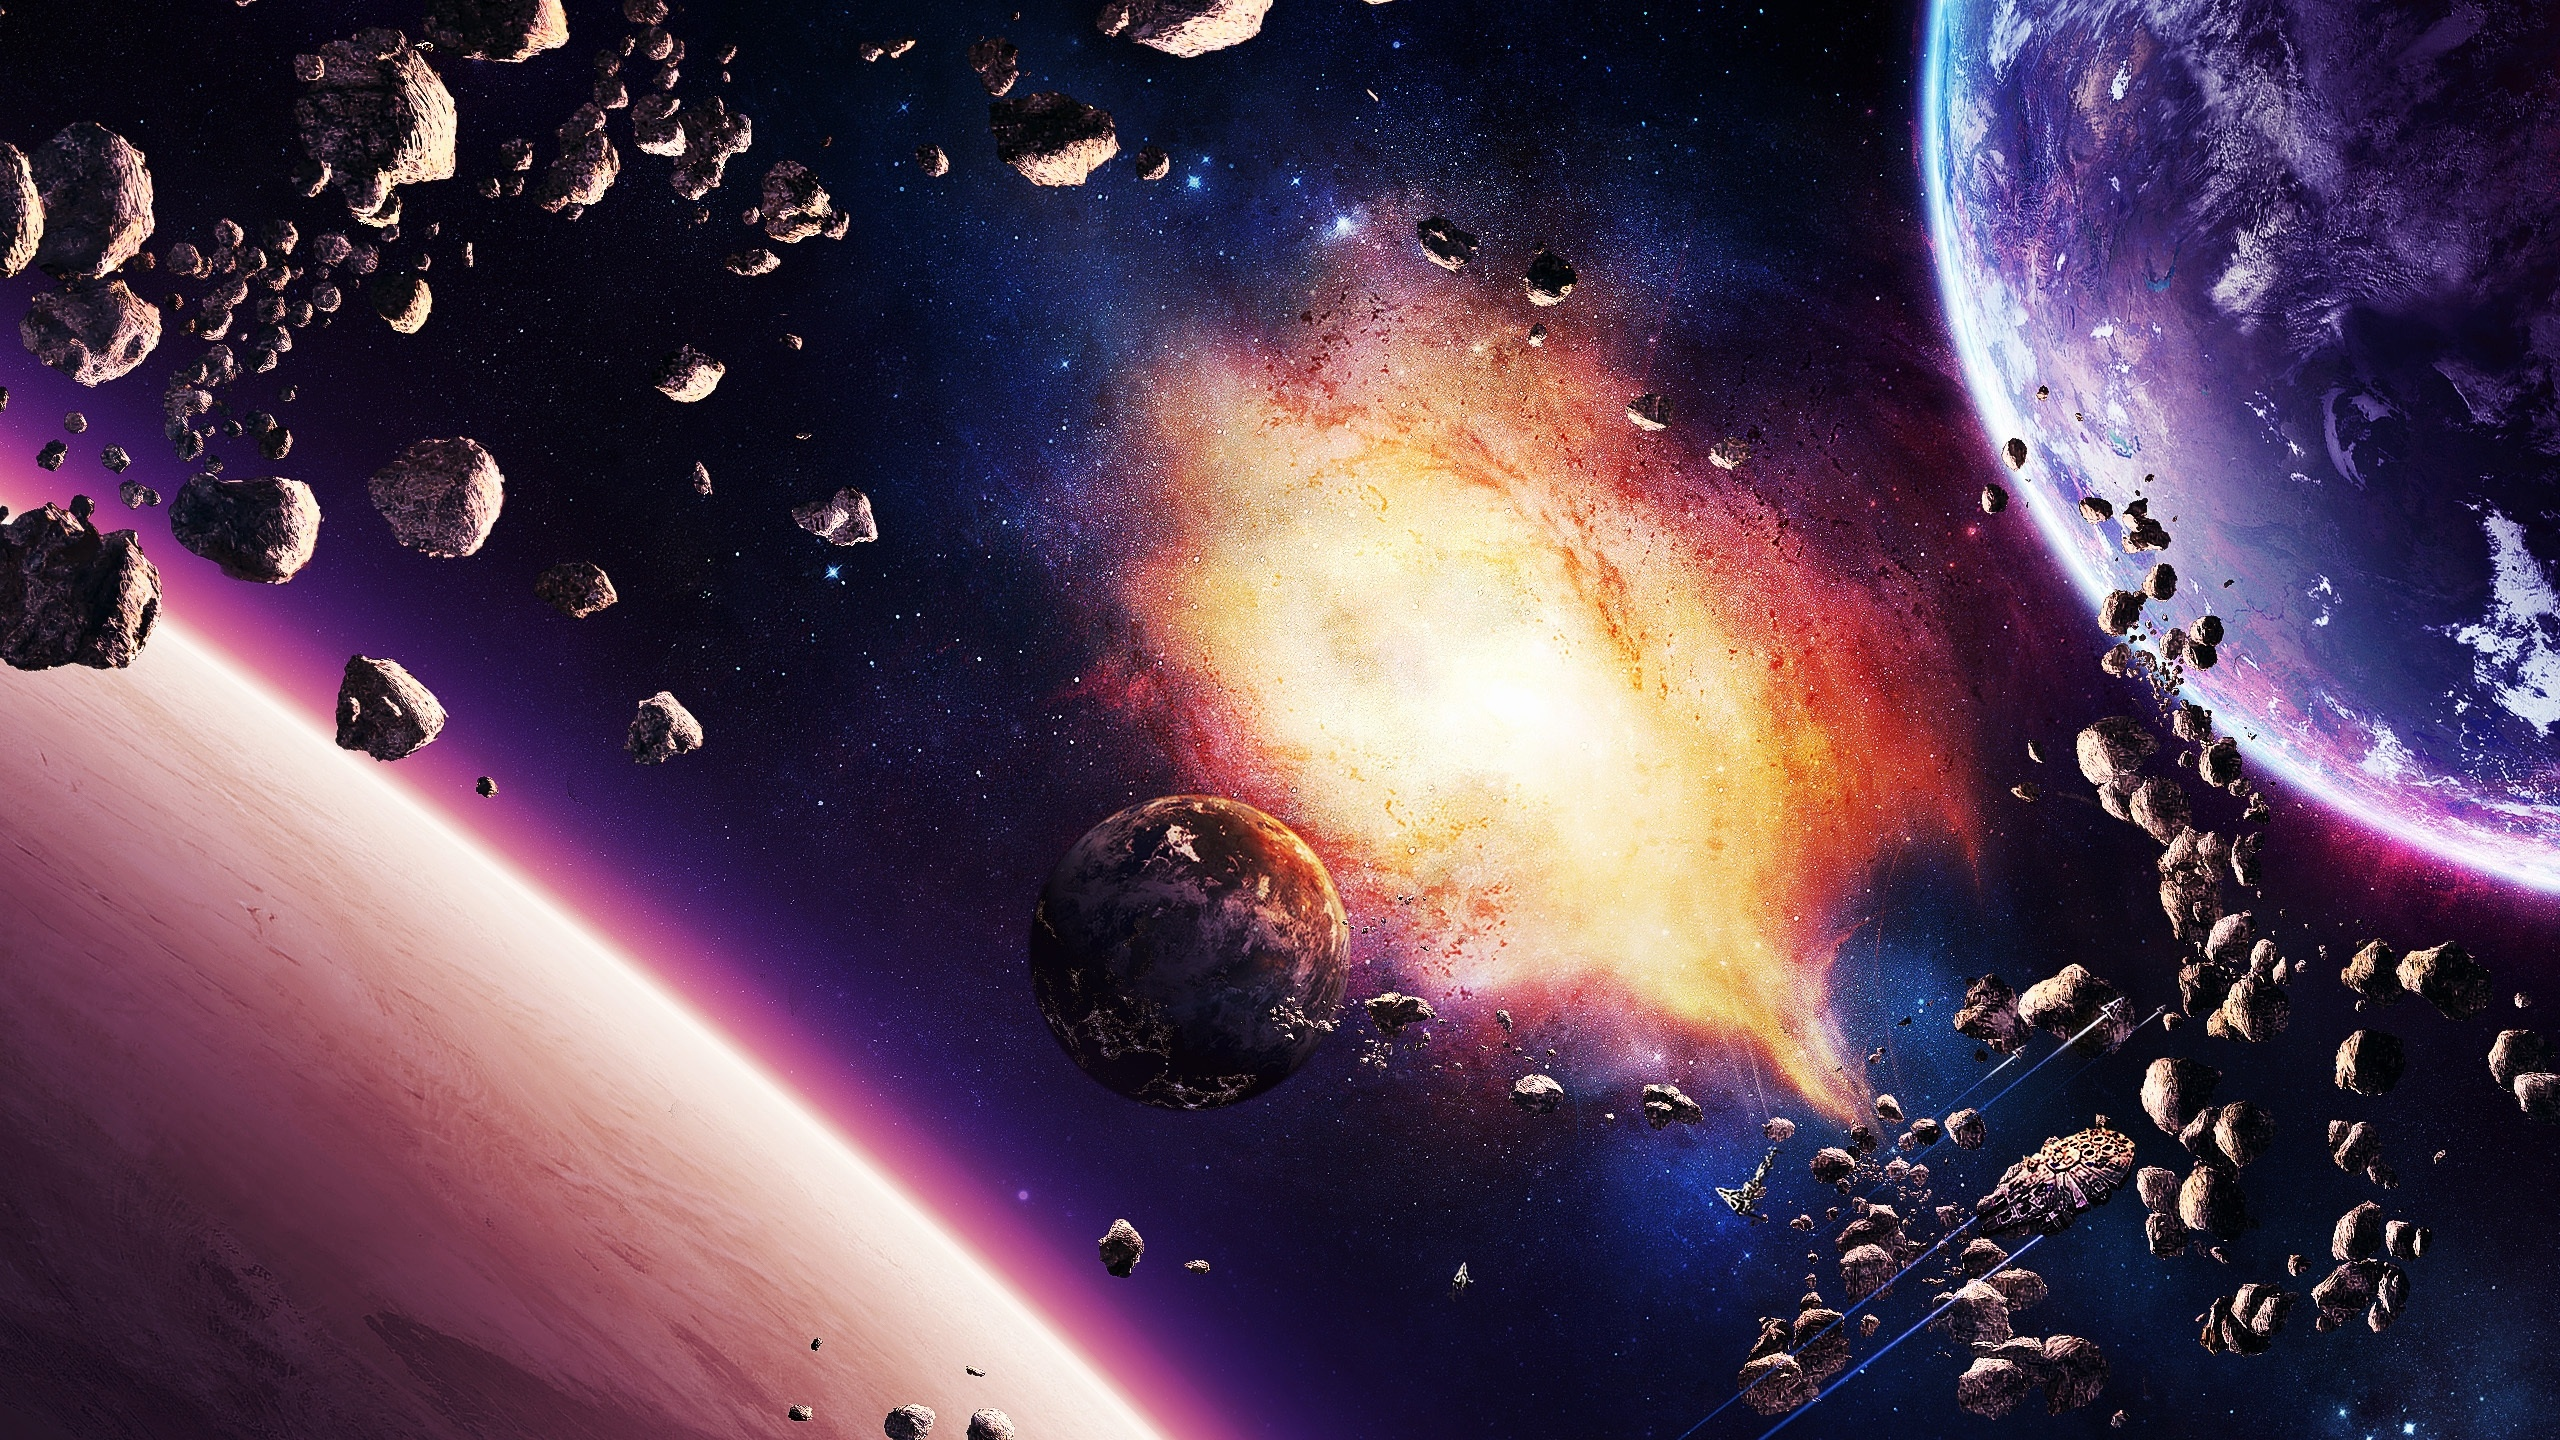 Space intense activity wallpapers 2560x1440 1860850 - Space 2560 x 1440 ...